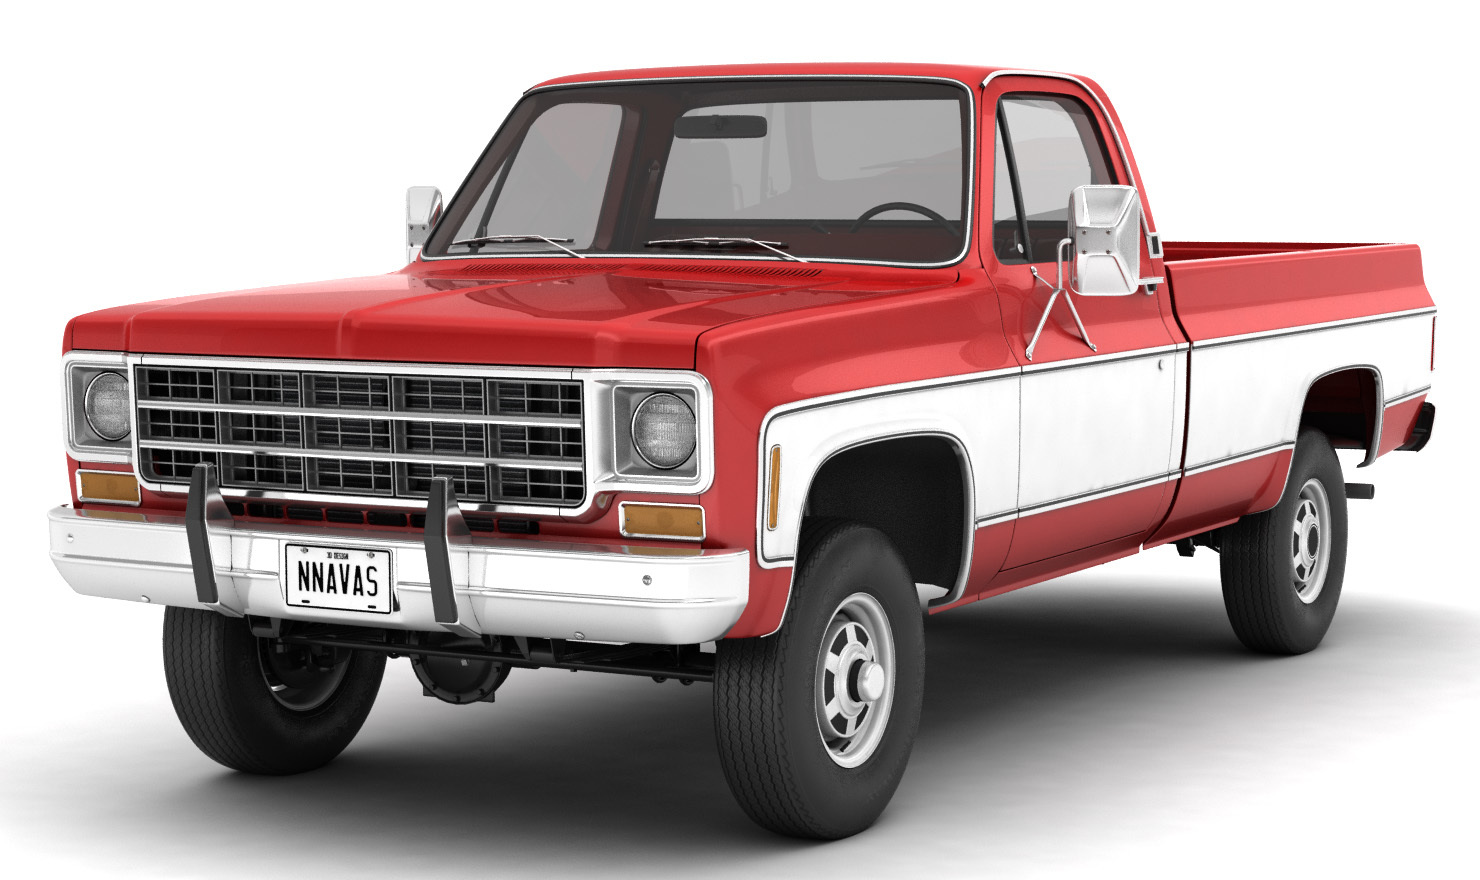 GENERIC 4WD PICKUP TRUCK 7 - Extended License by nnavas